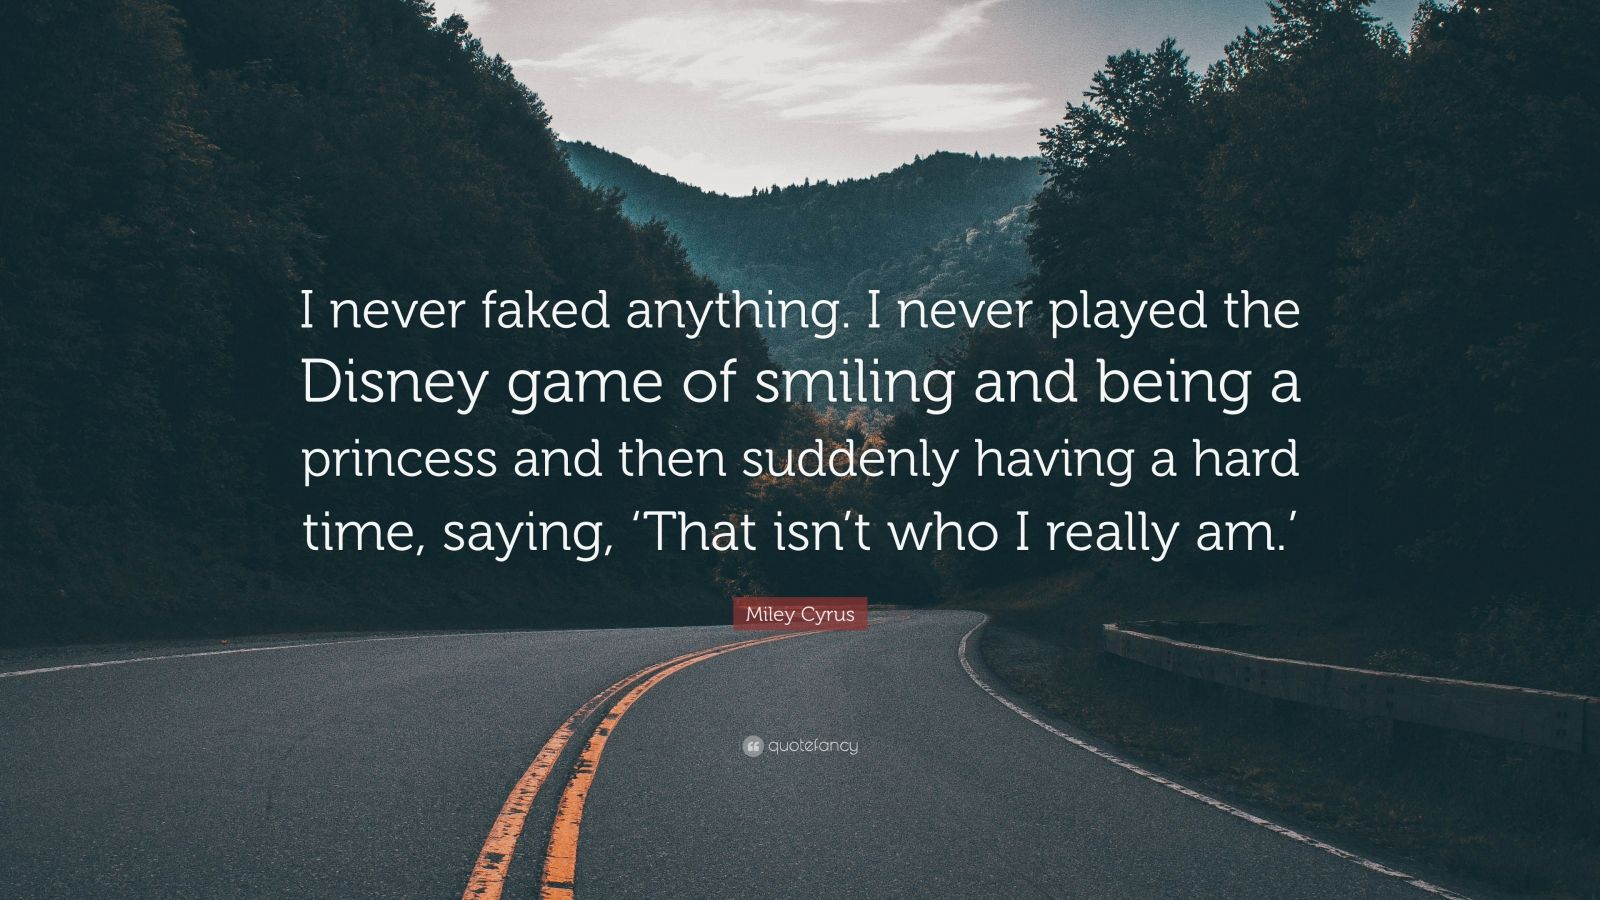 """Miley Cyrus Quote: """"I never faked anything. I never played the Disney game of smiling and being a princess and then suddenly having a hard time, saying, 'That isn't who I really am.'"""""""